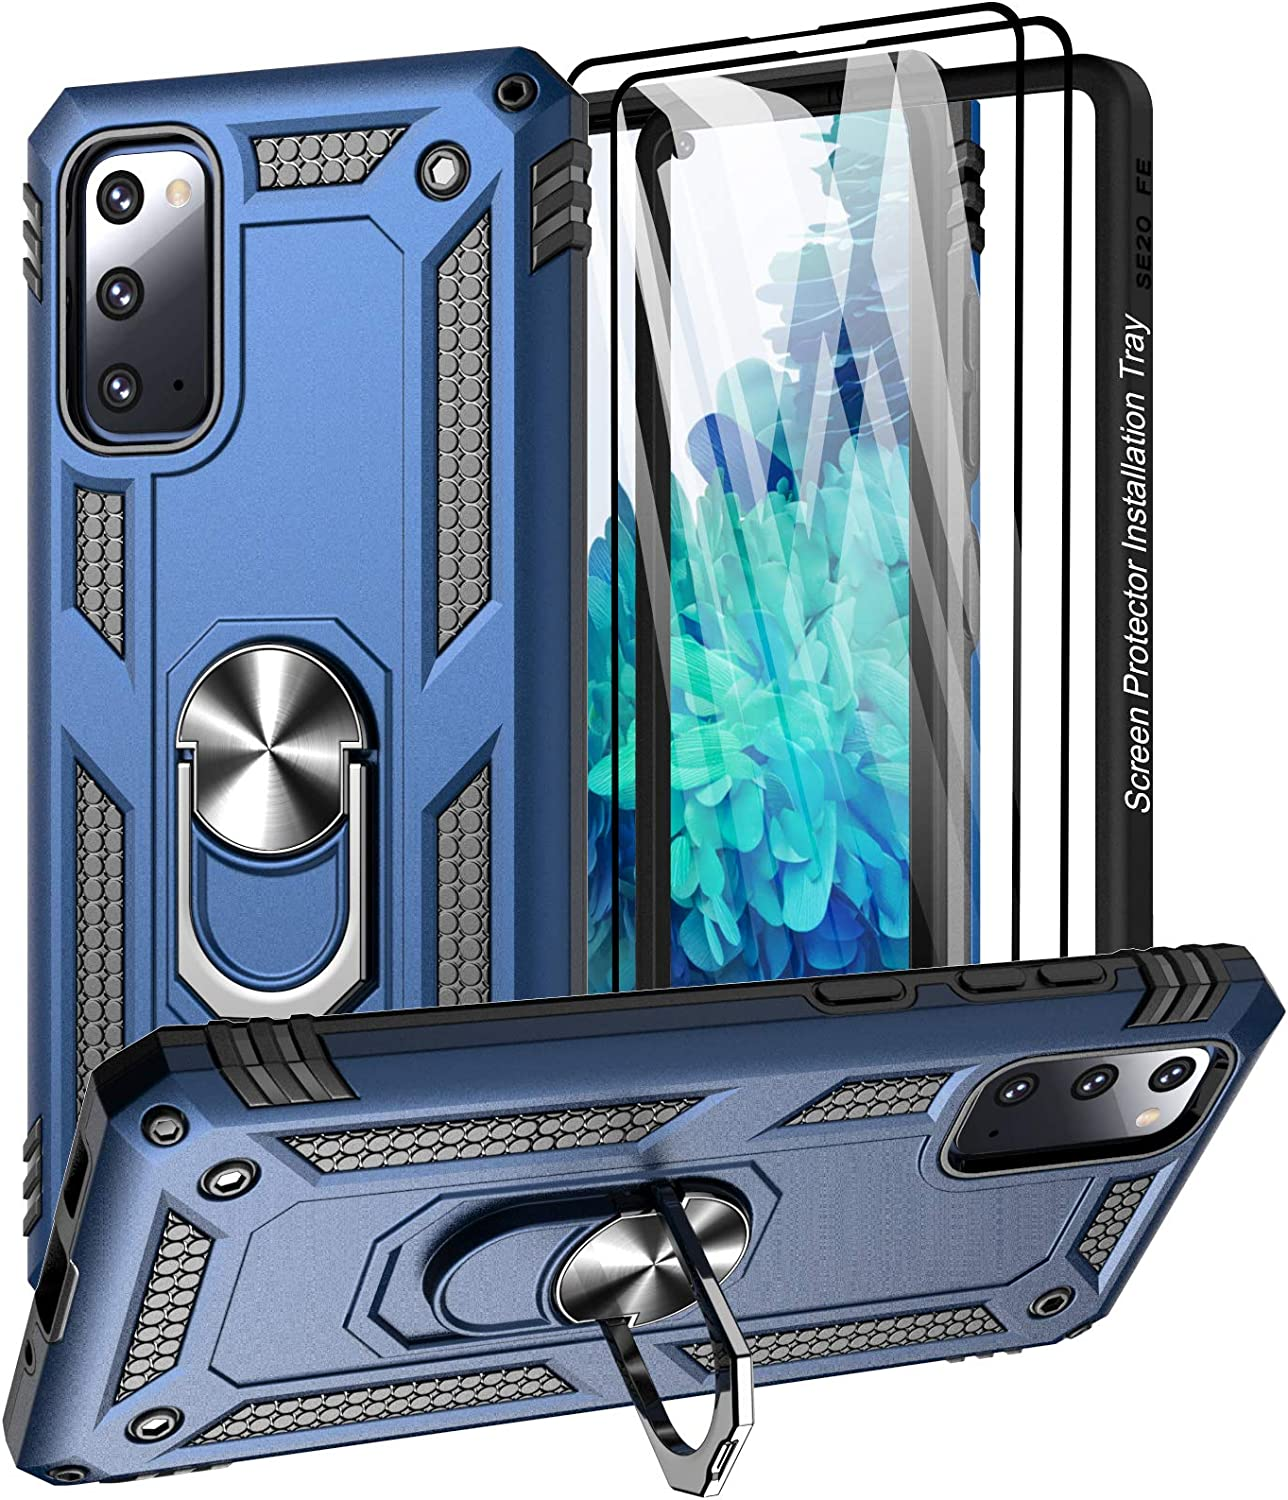 Aliruke Case for Galaxy S20 FE Case with 2 Glass Screen Protector and Align Frame,Military Grade Drop Tested Cover Grip Ring Kickstand Phone Cases for Samsung Galaxy S20 FE 5G/S20 Fan Edition, Blue